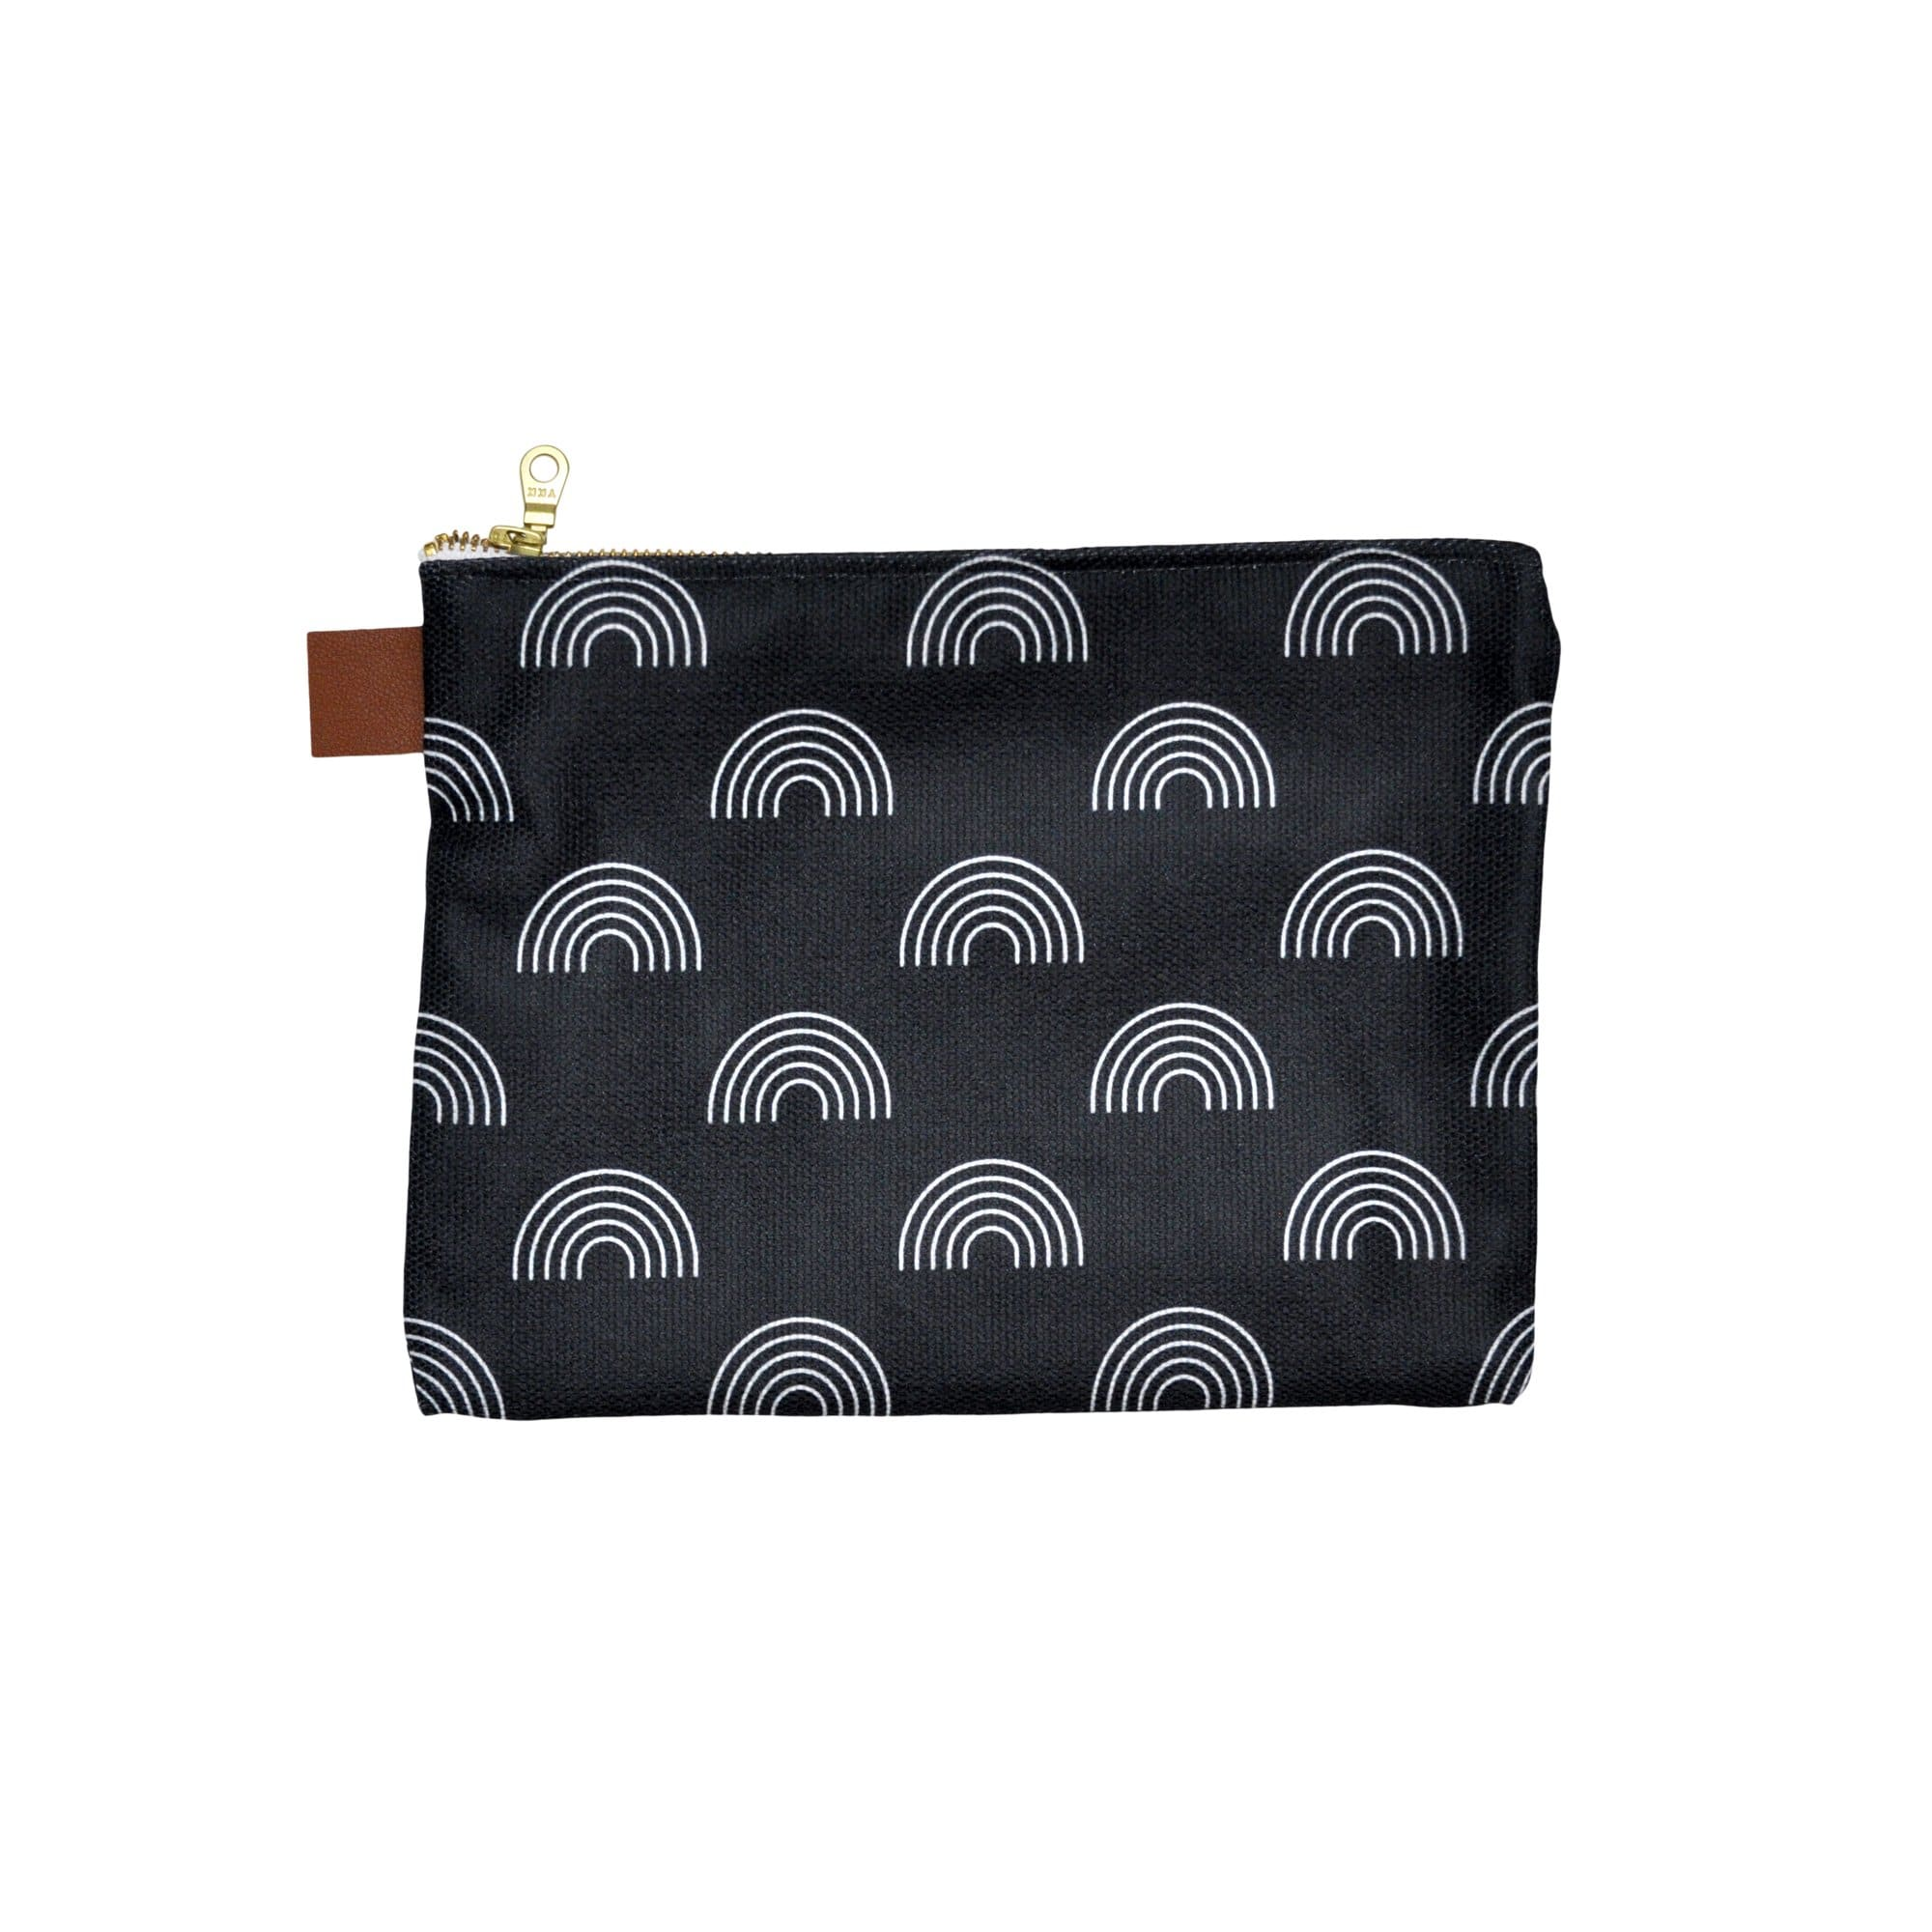 Swell Made Co. Handbags + Clutches Rainbow Canvas Pouch